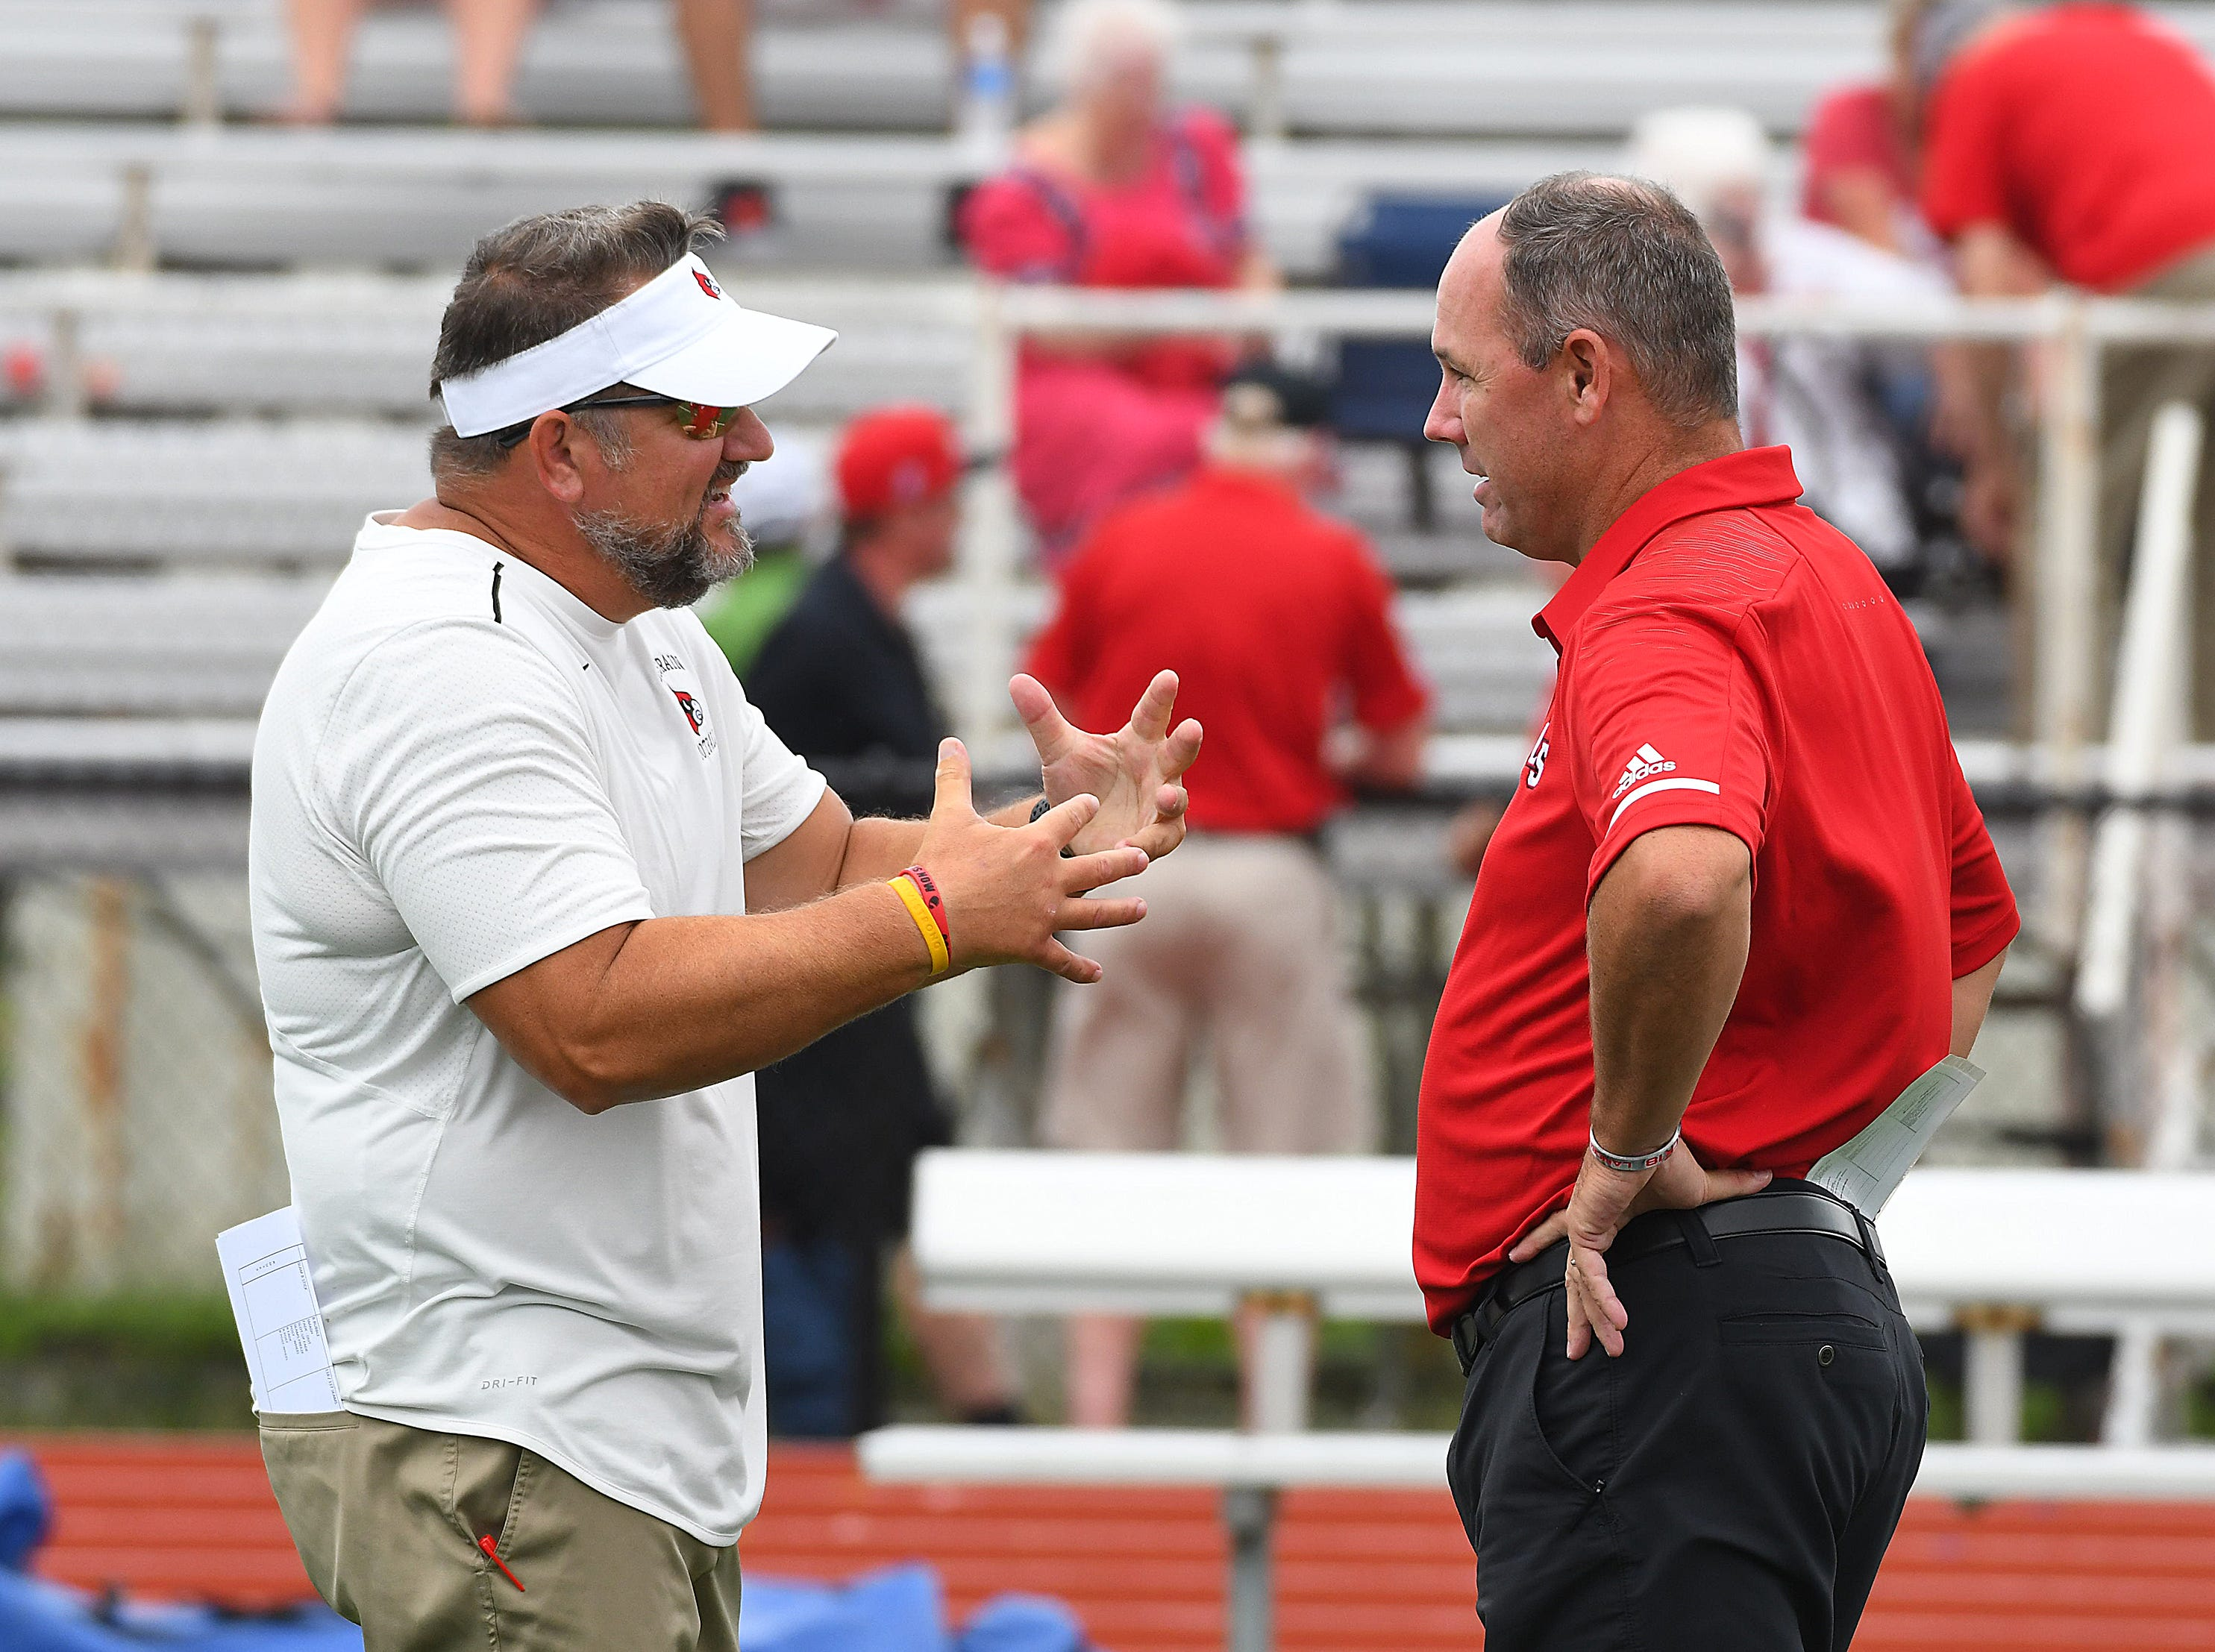 Colerain head coach Tom Bolden (left) talks to LaSalle head coach Pat McLaughlin (right) before the game in the Skyline Chili Crosstown Showdown, Colerain Township, Friday August 24, 2018